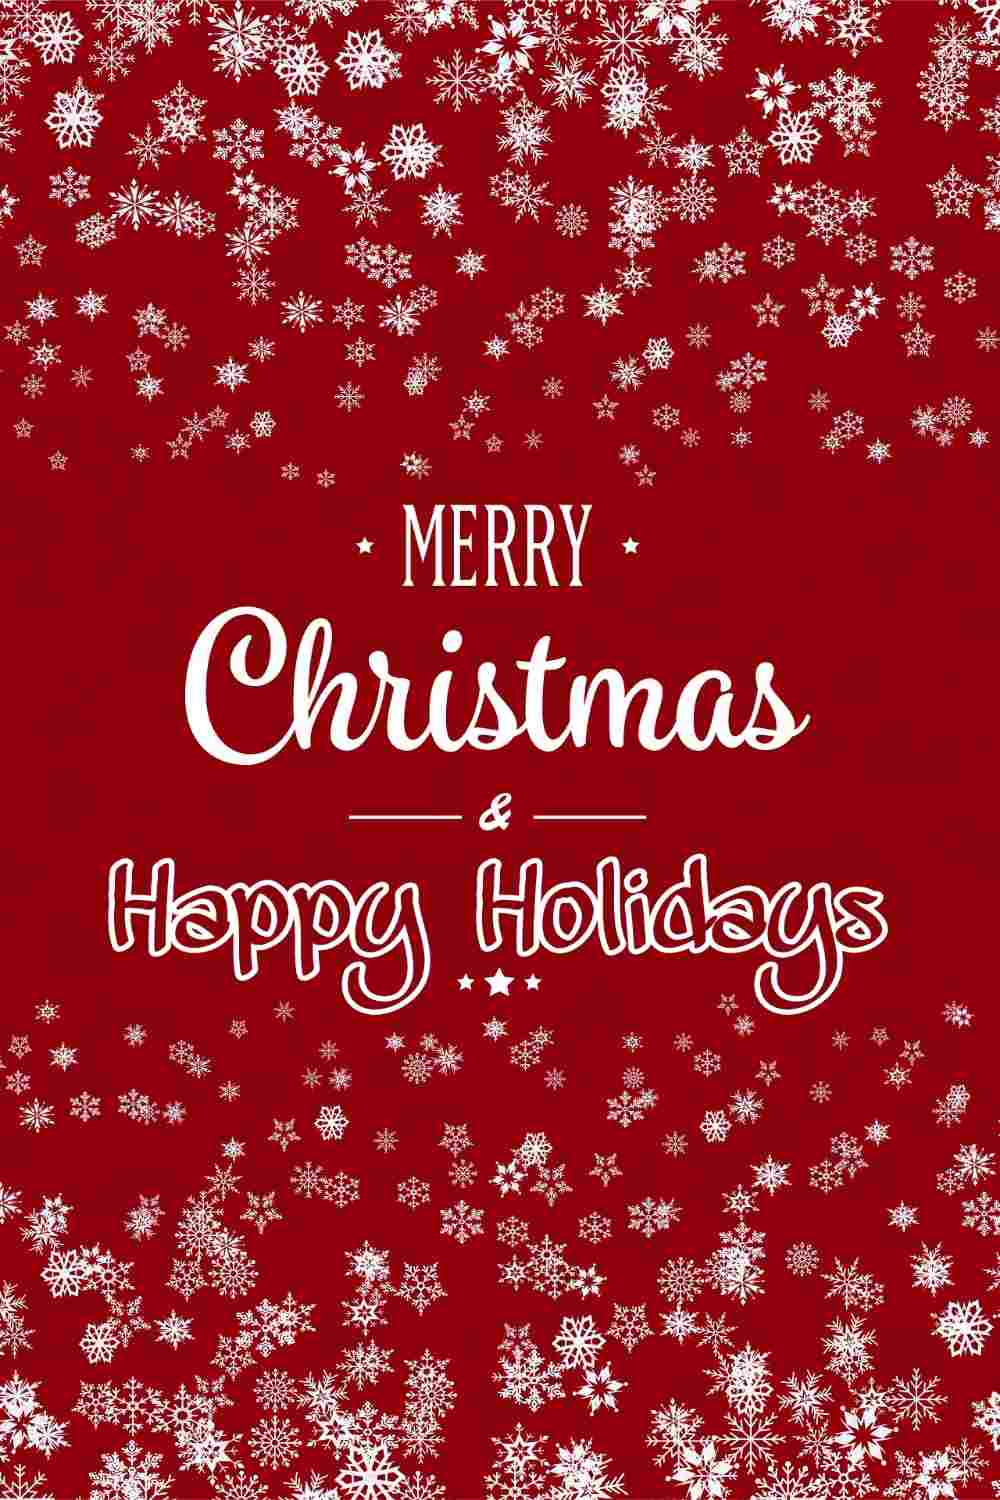 Merry Christmas and Happy Holidays 2022 greetings, images and cards for Whatsapp DP